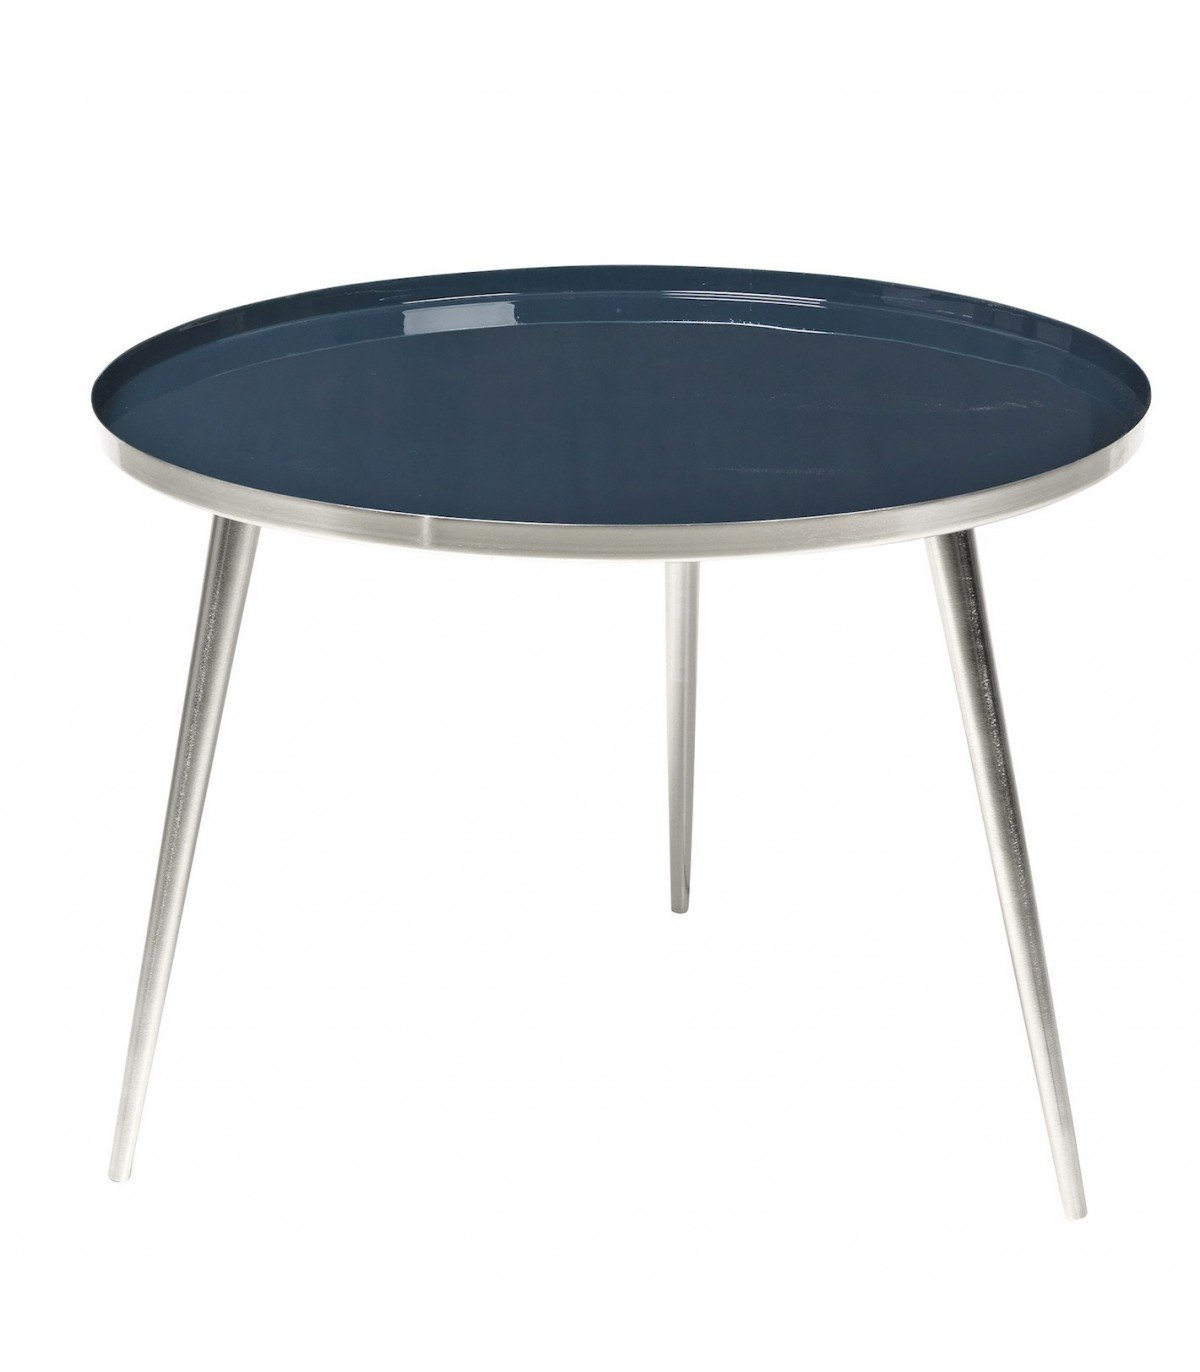 table basse jelva bleu argent broste copenhagen. Black Bedroom Furniture Sets. Home Design Ideas